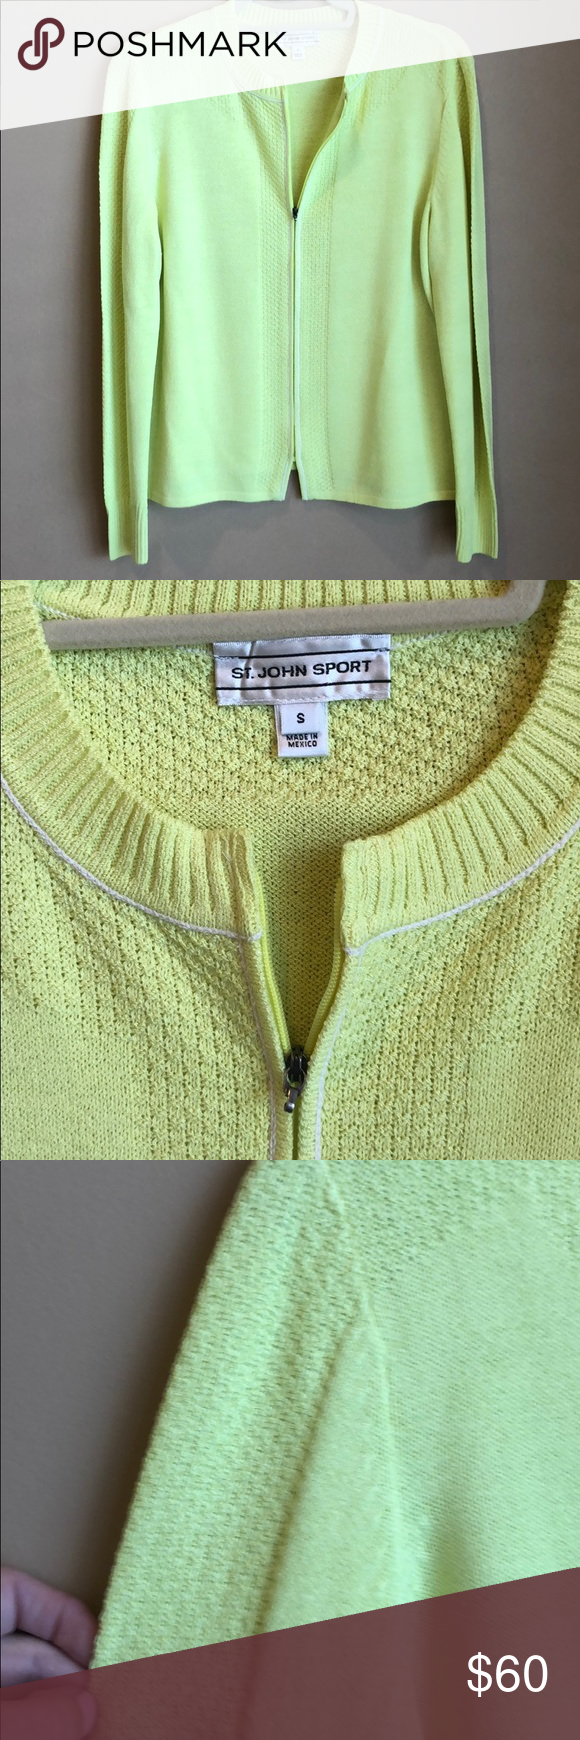 "St John Sport Small ZIP Front Lightweight Sweater Lemon Yellow St John Sport Small ZIP Front Lightweight Sweater Only issue is the zipper. It's fully functional but the tip that says St John is missing. Photo attached.  Center front 21"" Bust 19"" Sleeve 24.5. Great condition (with the zipper pull being the only drawback). St. John Sweaters Cardigans"